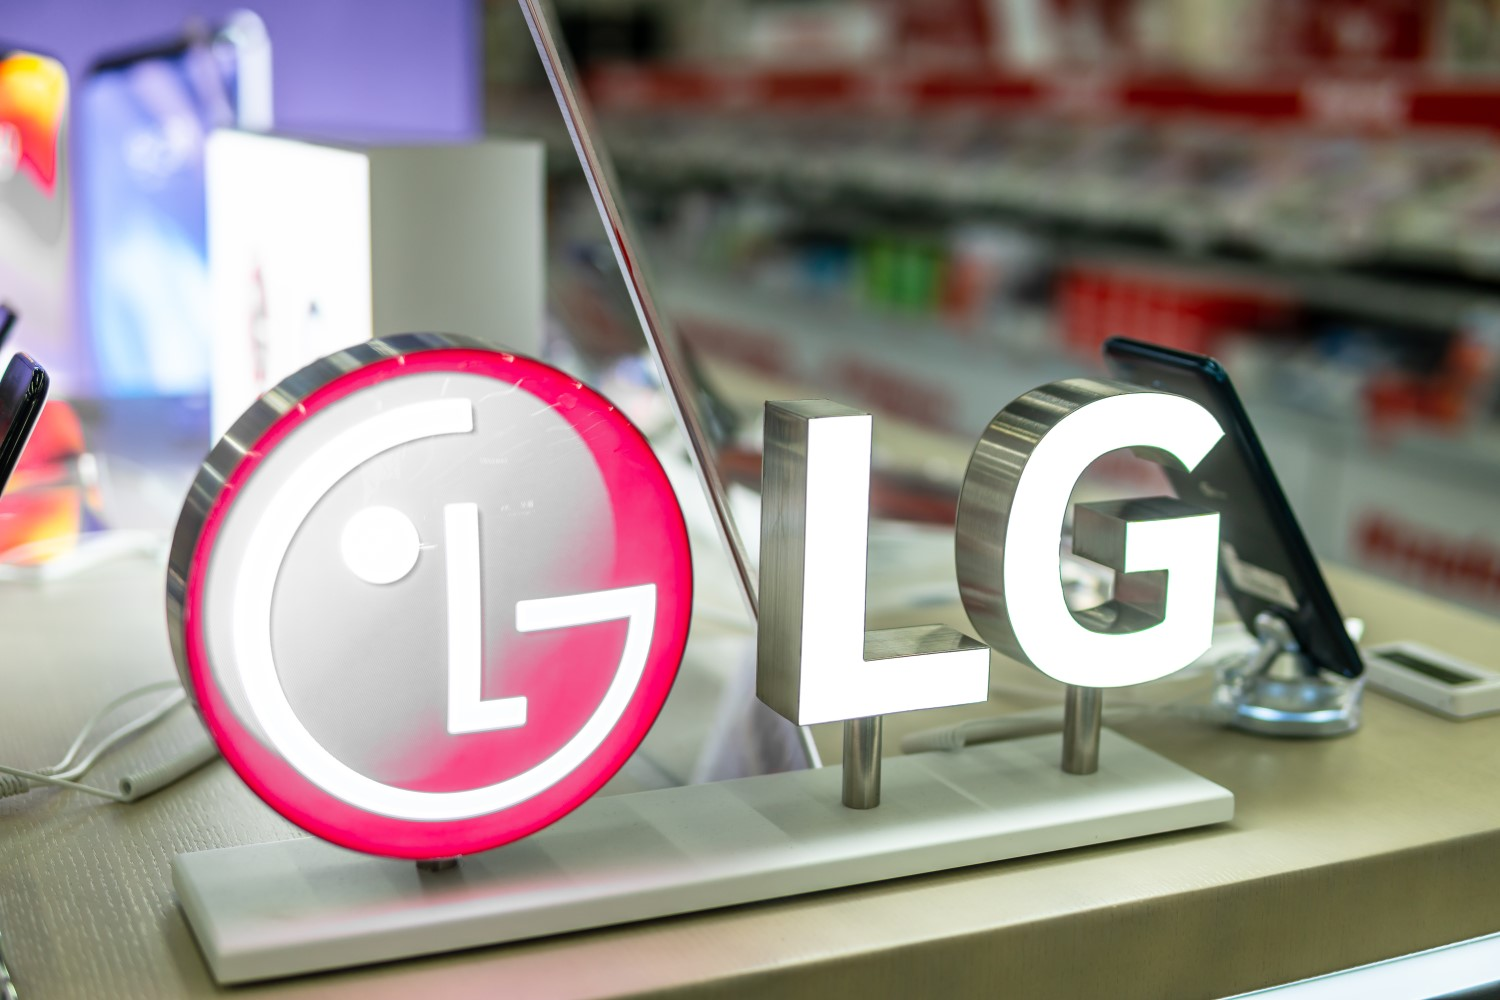 LG Developing a Blockchain Phone in Response to Samsung: Korean Media